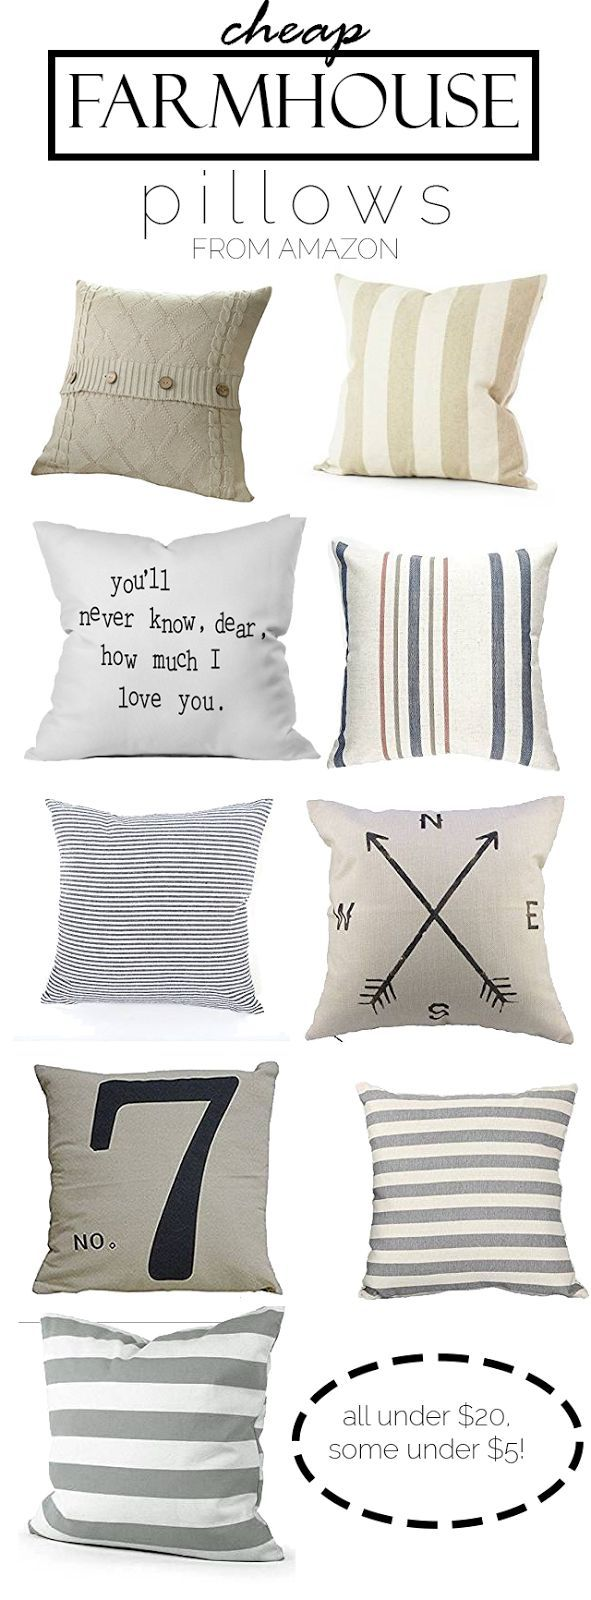 Cheap Decorative Pillows Under $10 New 174 Best Coussins Images On Pinterest  Home Ideas Pillows And Blinds Inspiration Design